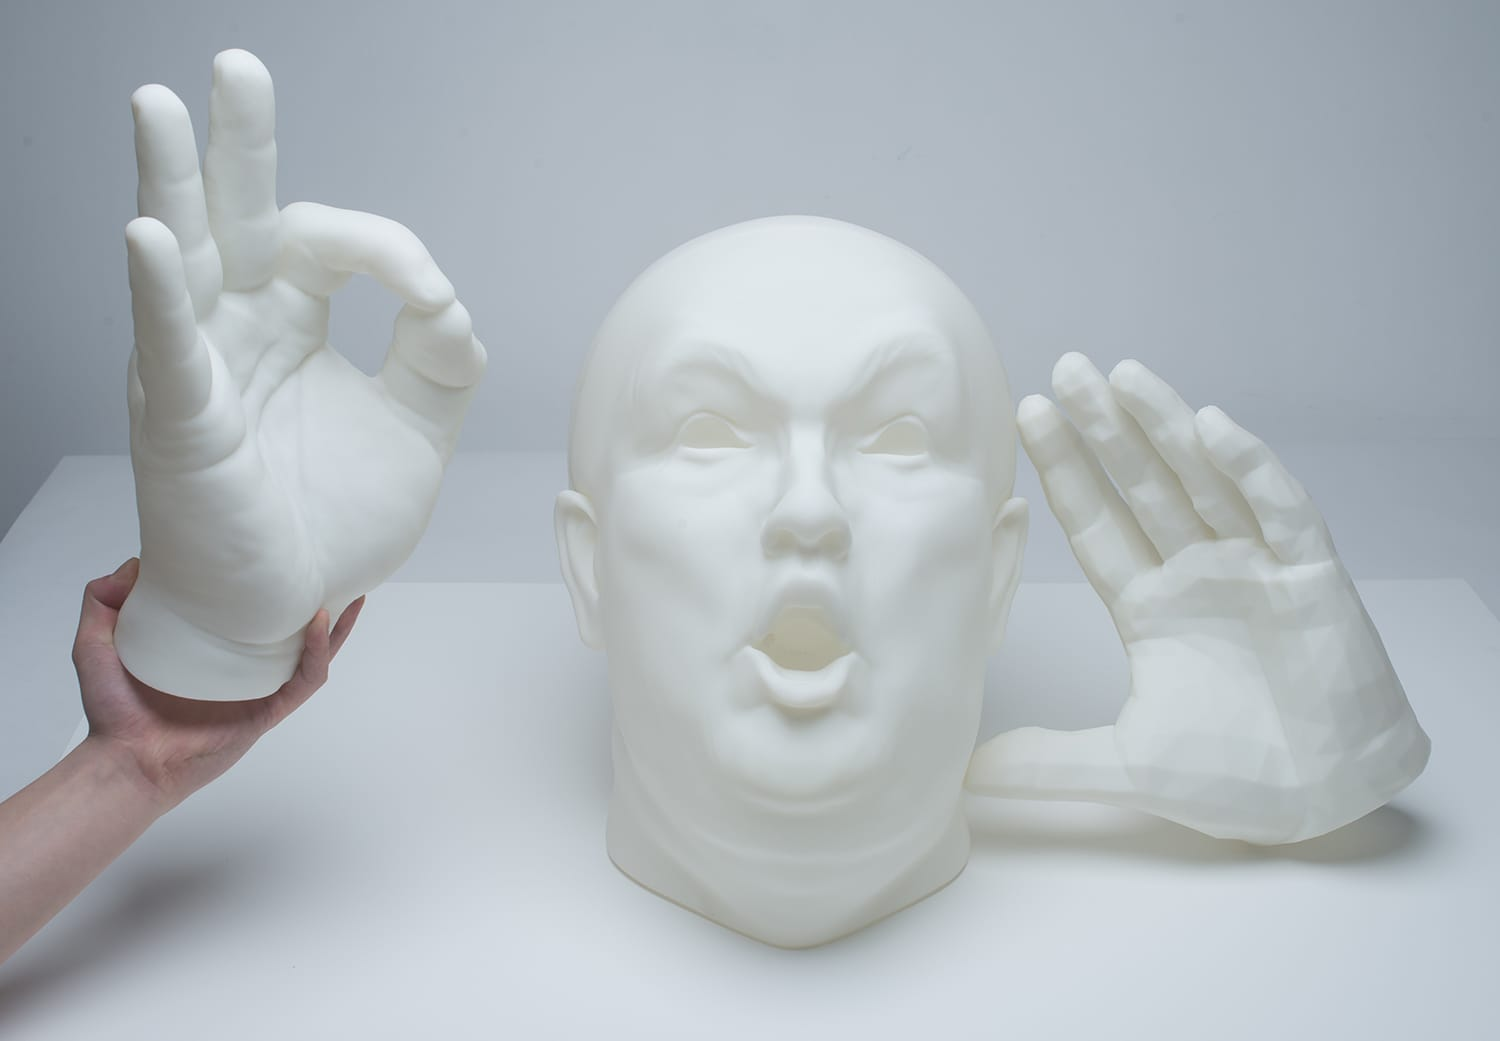 3d printed donald trump's head with hands on each side